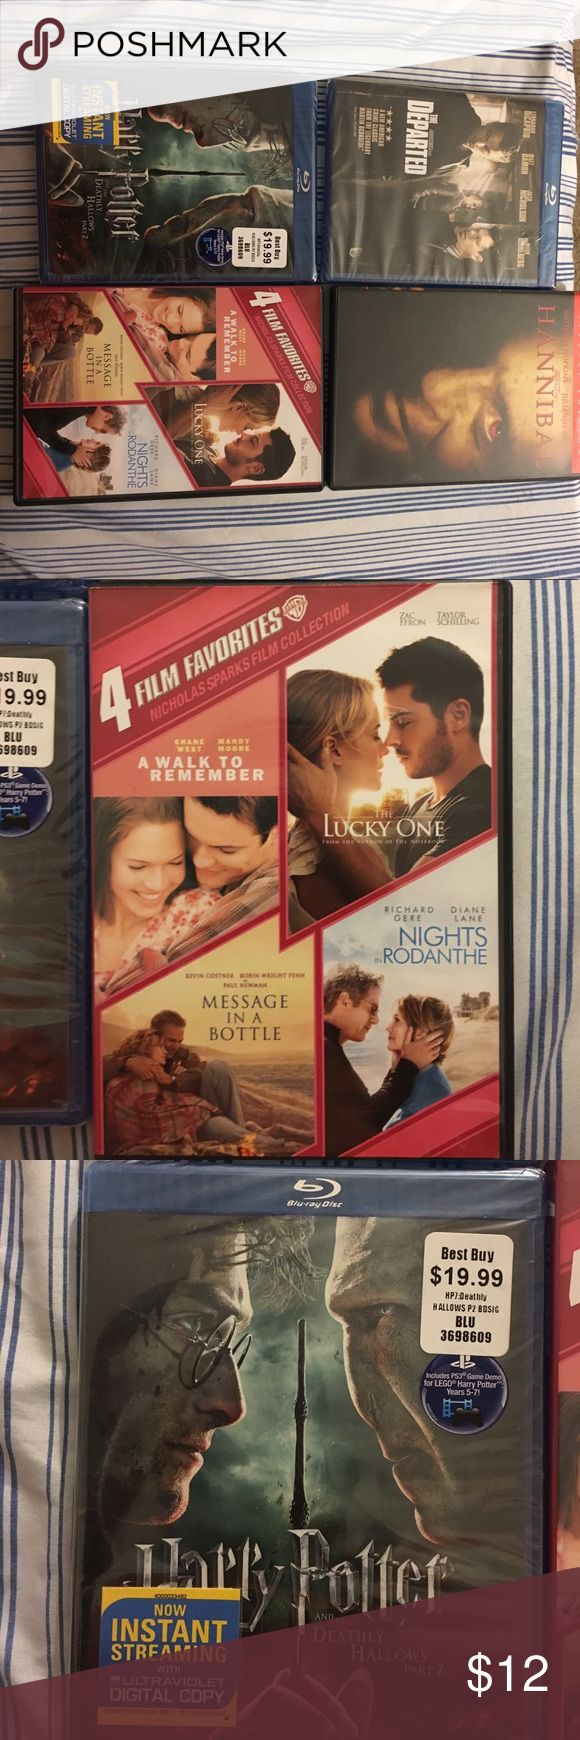 Bundle movies All brand new bundle movies. Blu-ray The Departed, Blu-ray Harry Potter the deathly hollows pt 2 Hannibal and 4 Film romance collection including (A walk to remember, the lucky one, message in a bottle, and nights in rodanthe) Other